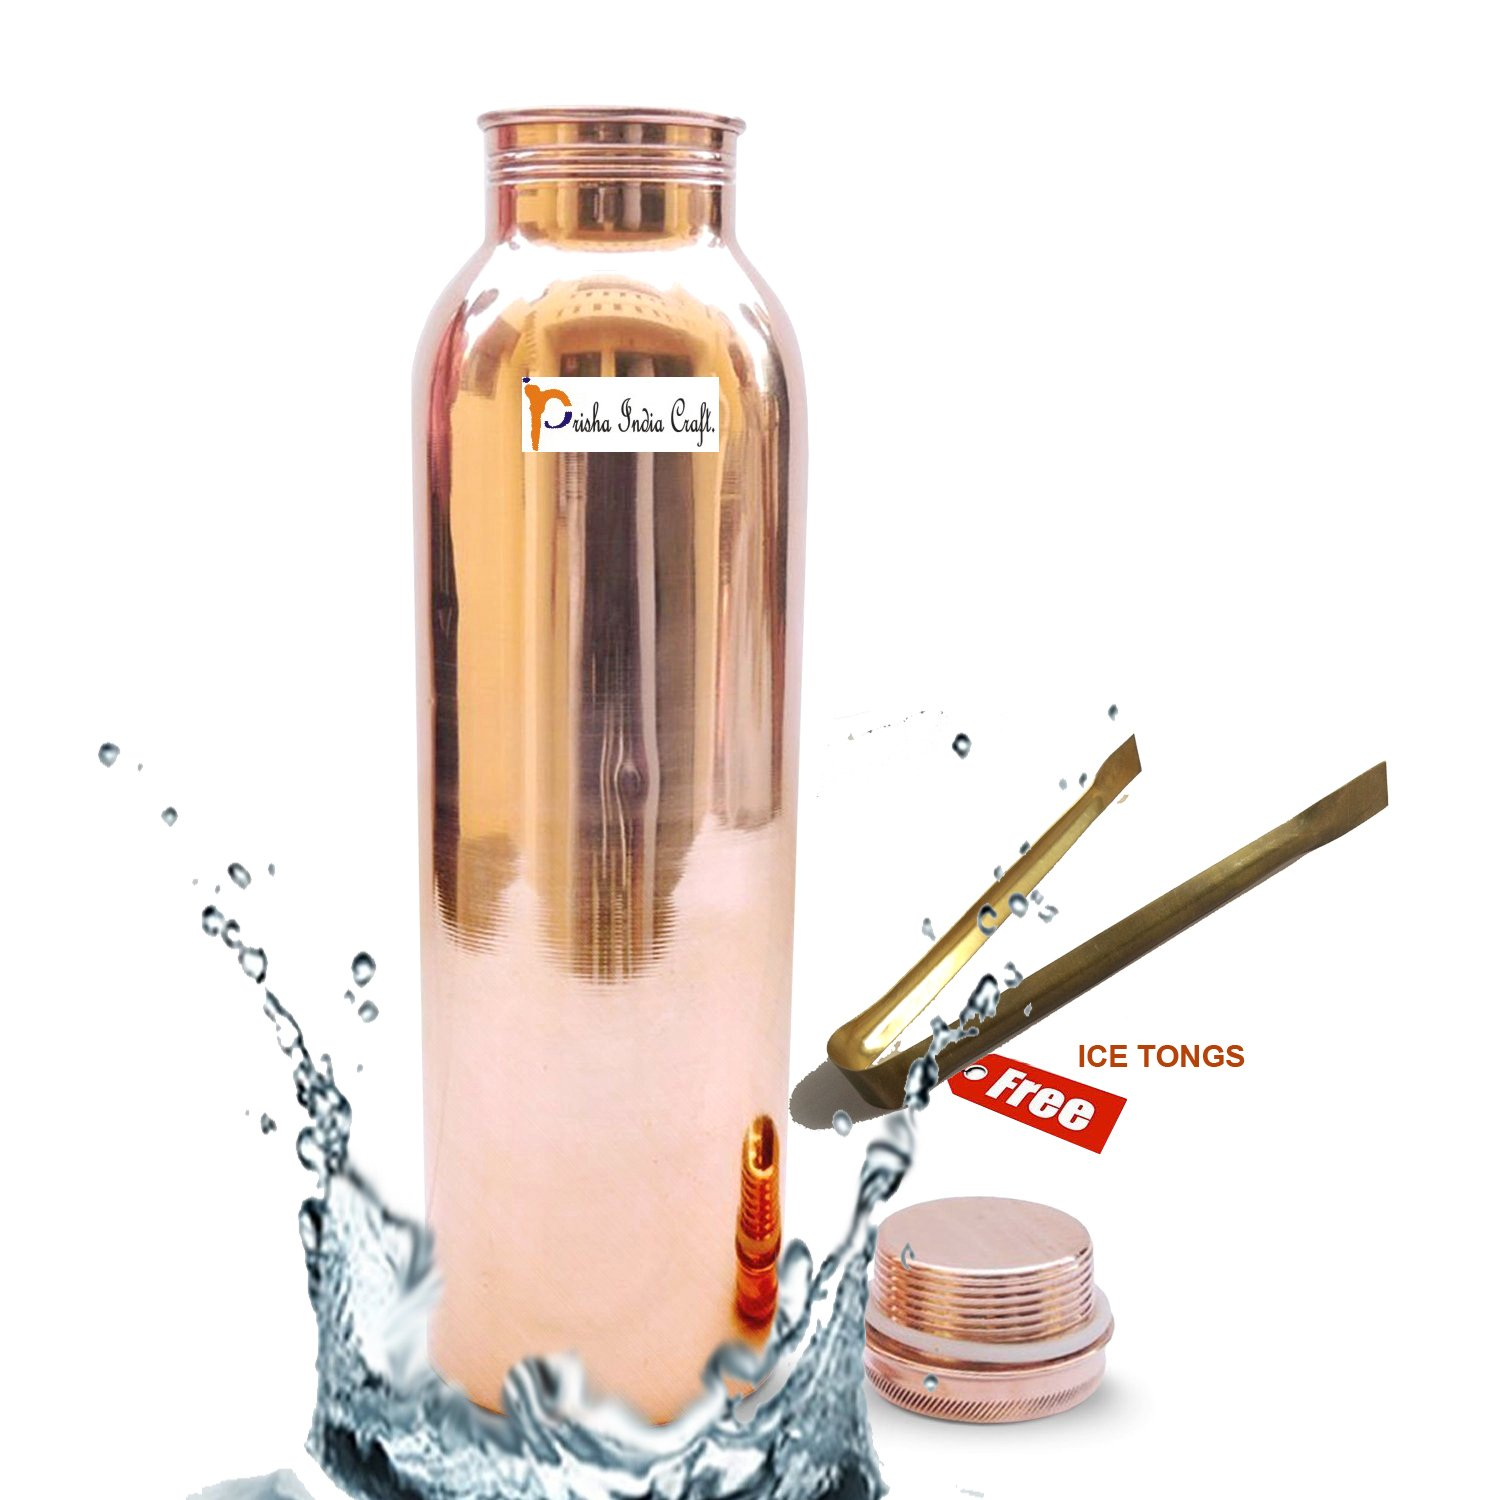 Prisha India Craft Pure Copper Water Bottle/Handmade Leak Proof Copper Vessel for Travel/JointFree Insulated Copper Thermos with Ayurvedic Health Benefits, 30 Ounce